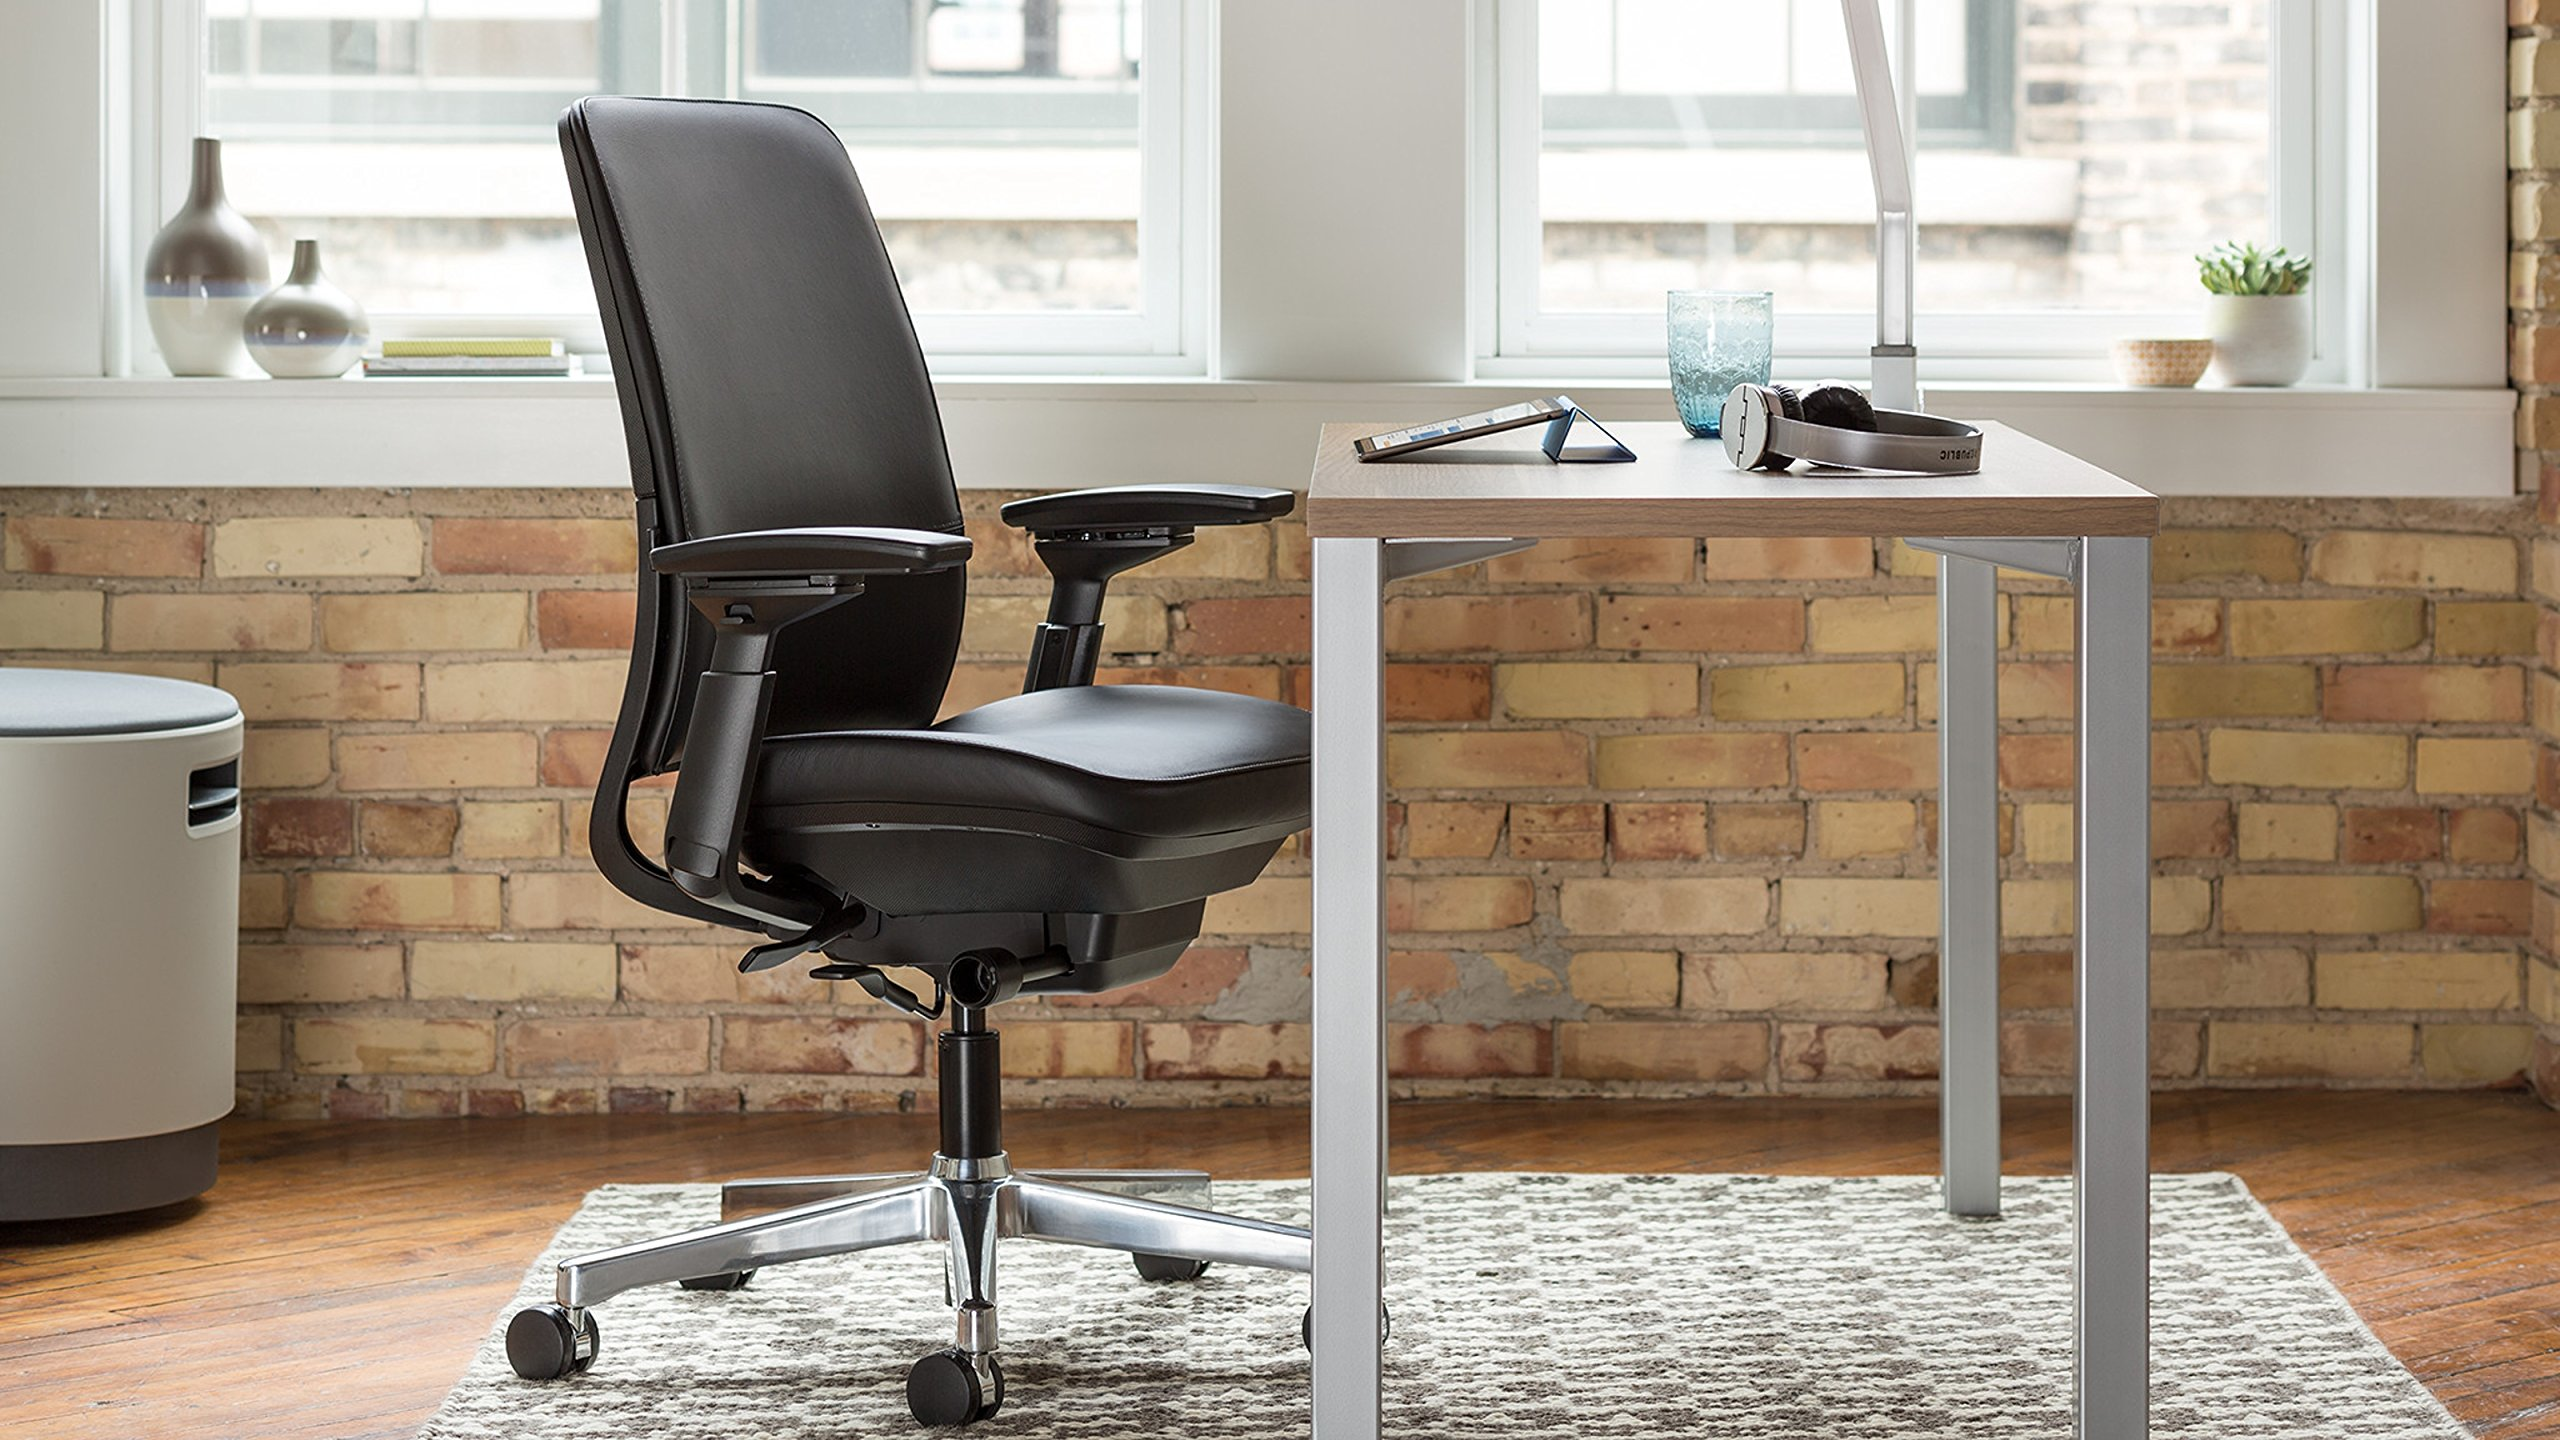 Steelcase Amia Task Chair: Platinum Frame/Polished Aluminum Base - 4 Way Adjustable Arms - Standard Carpet Casters